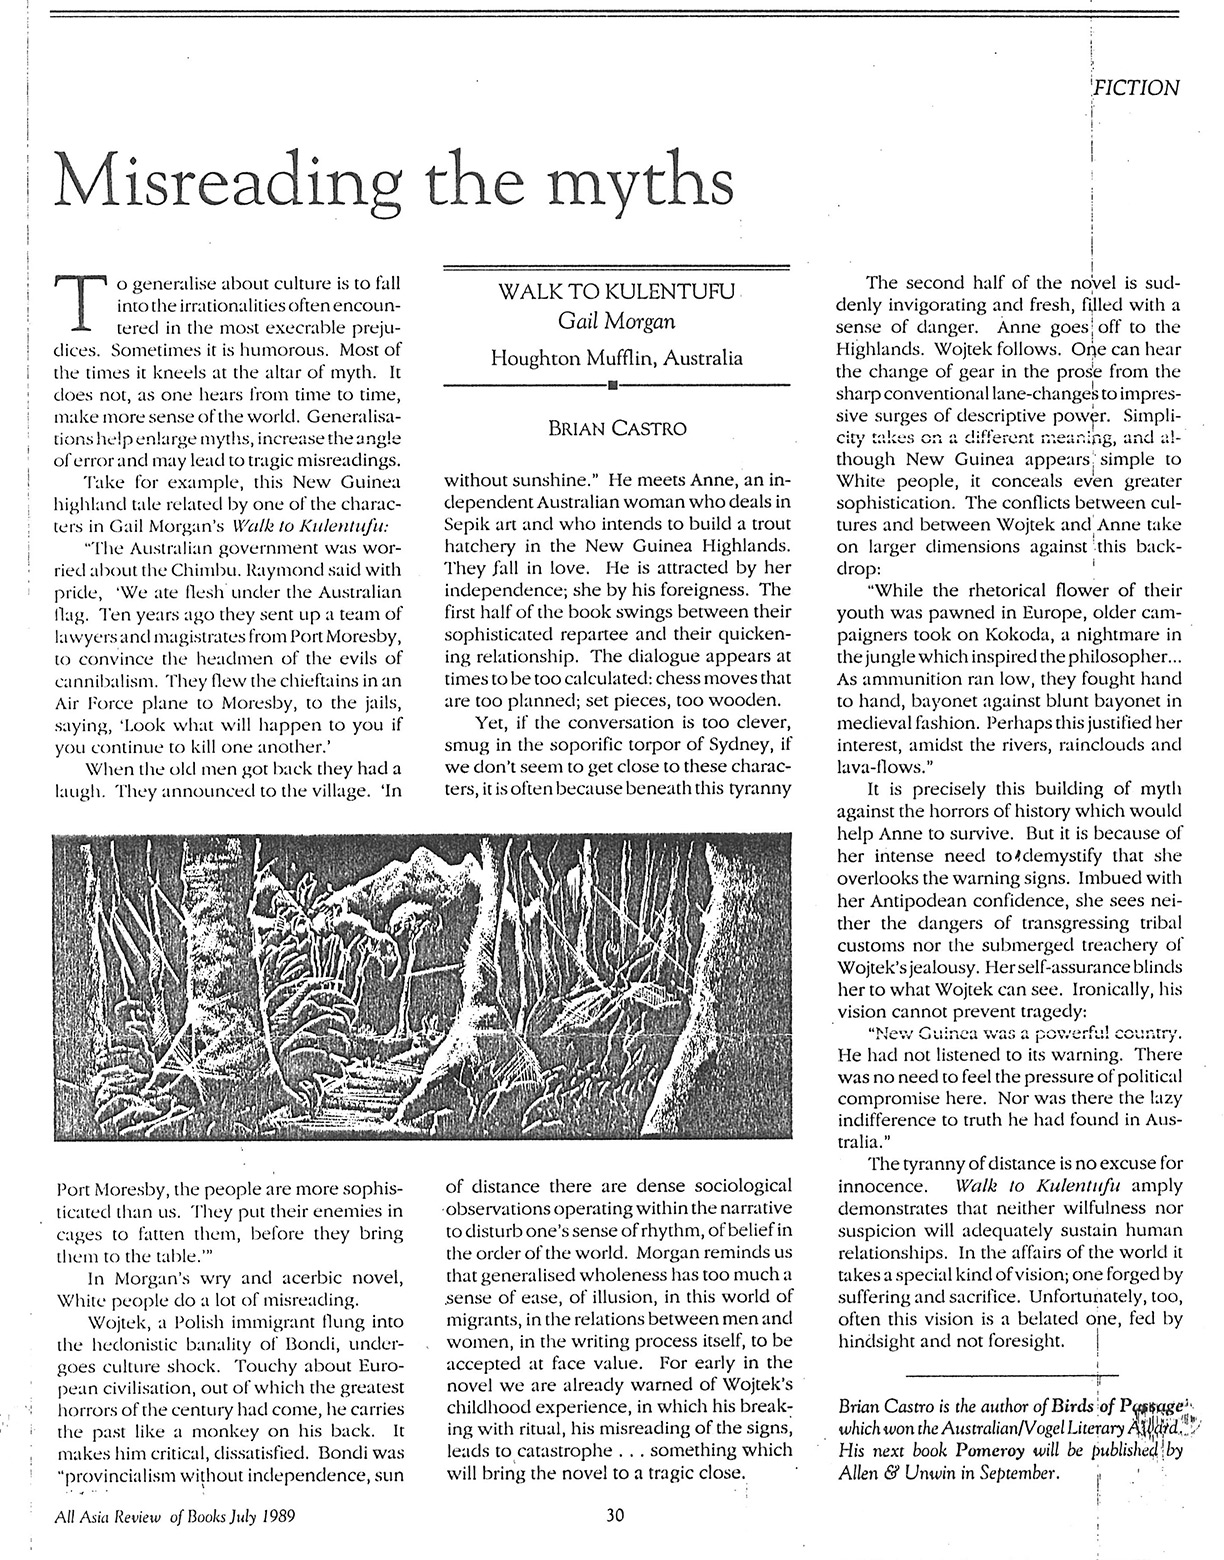 Misreading the Myths – Walk to Kulentufu Review by Brian Castro